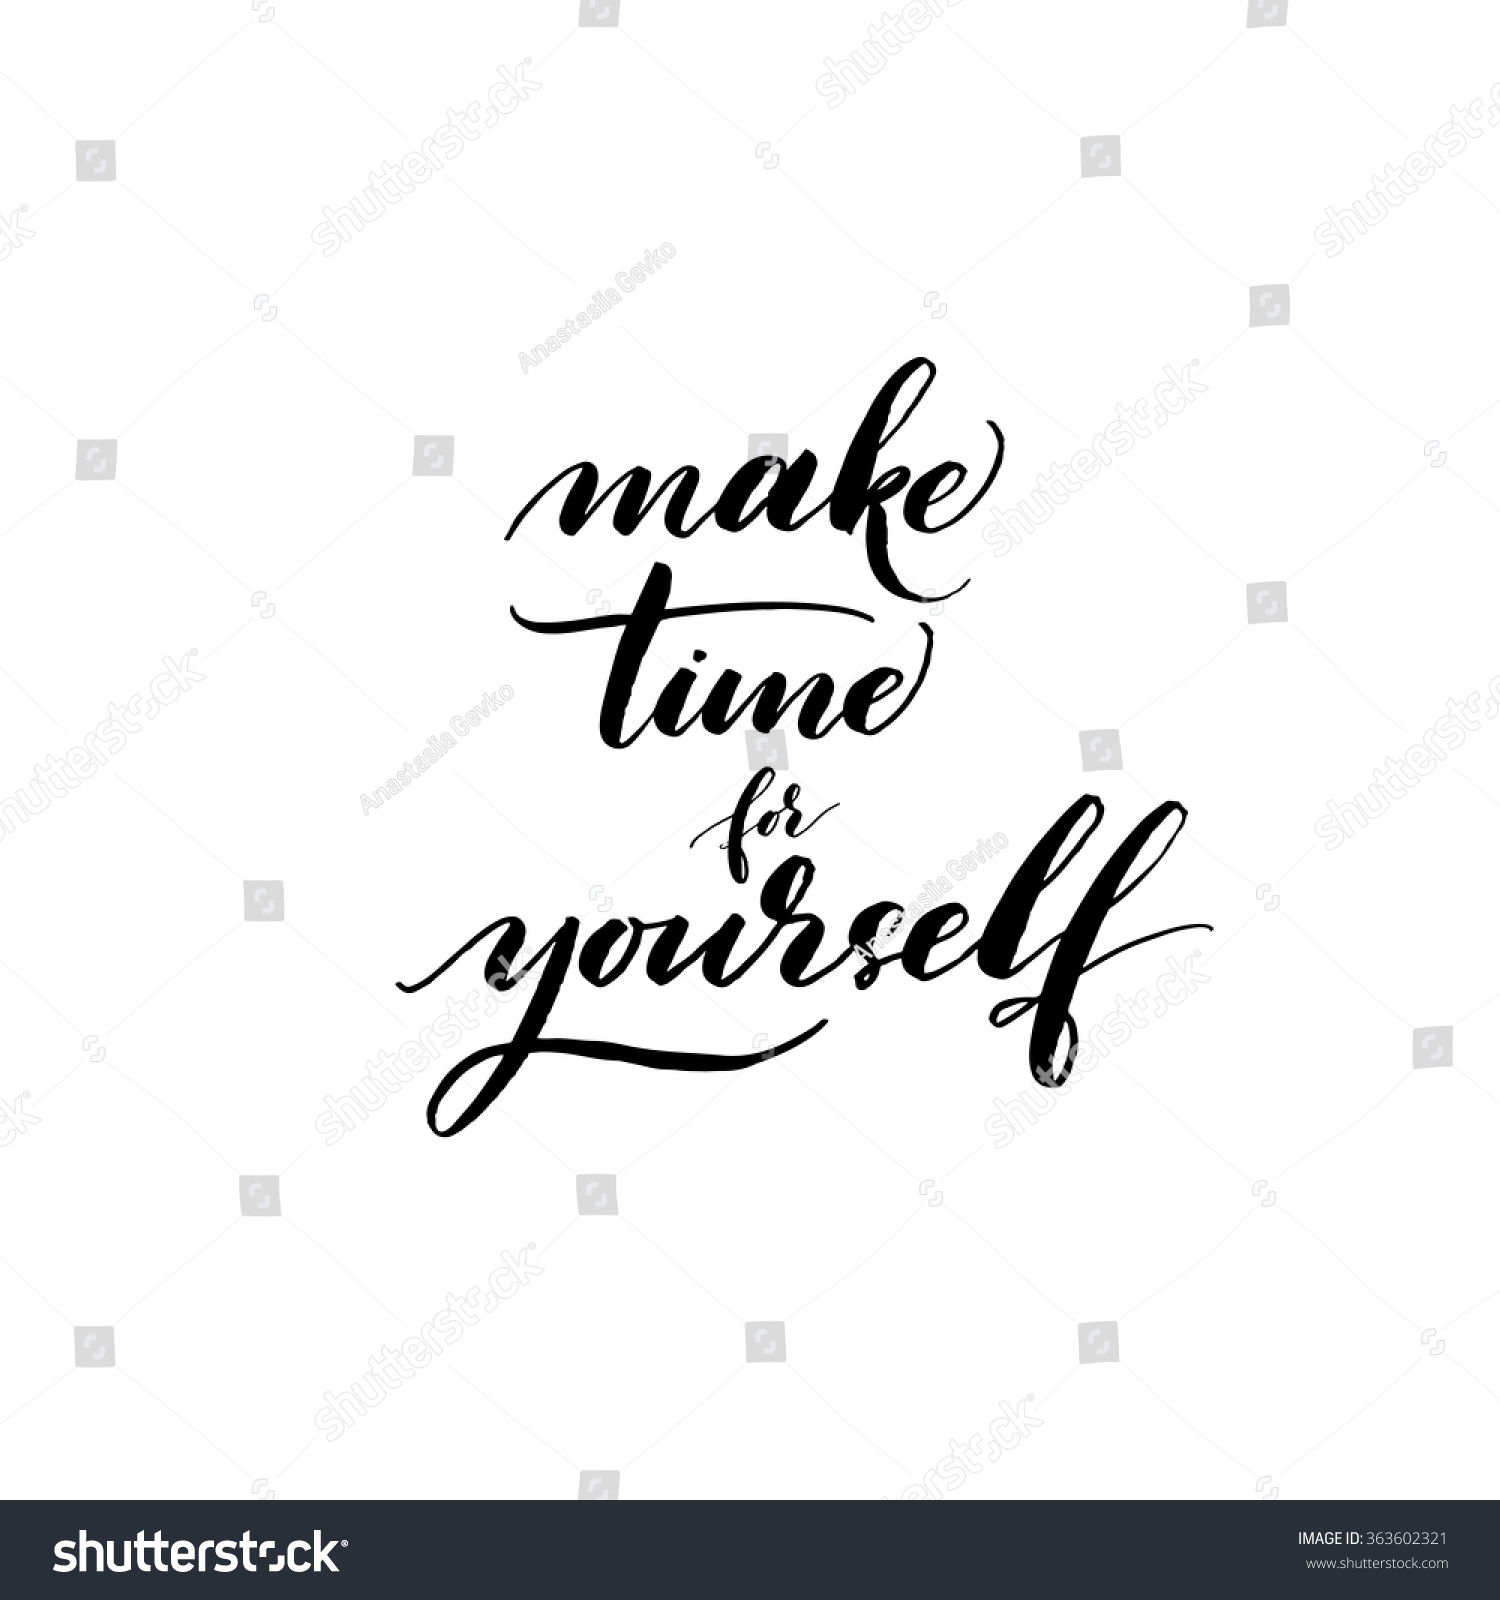 Make Time For Yourself Card. Hand Drawn Lettering Card. Motivation Quote.  Ink Illustration